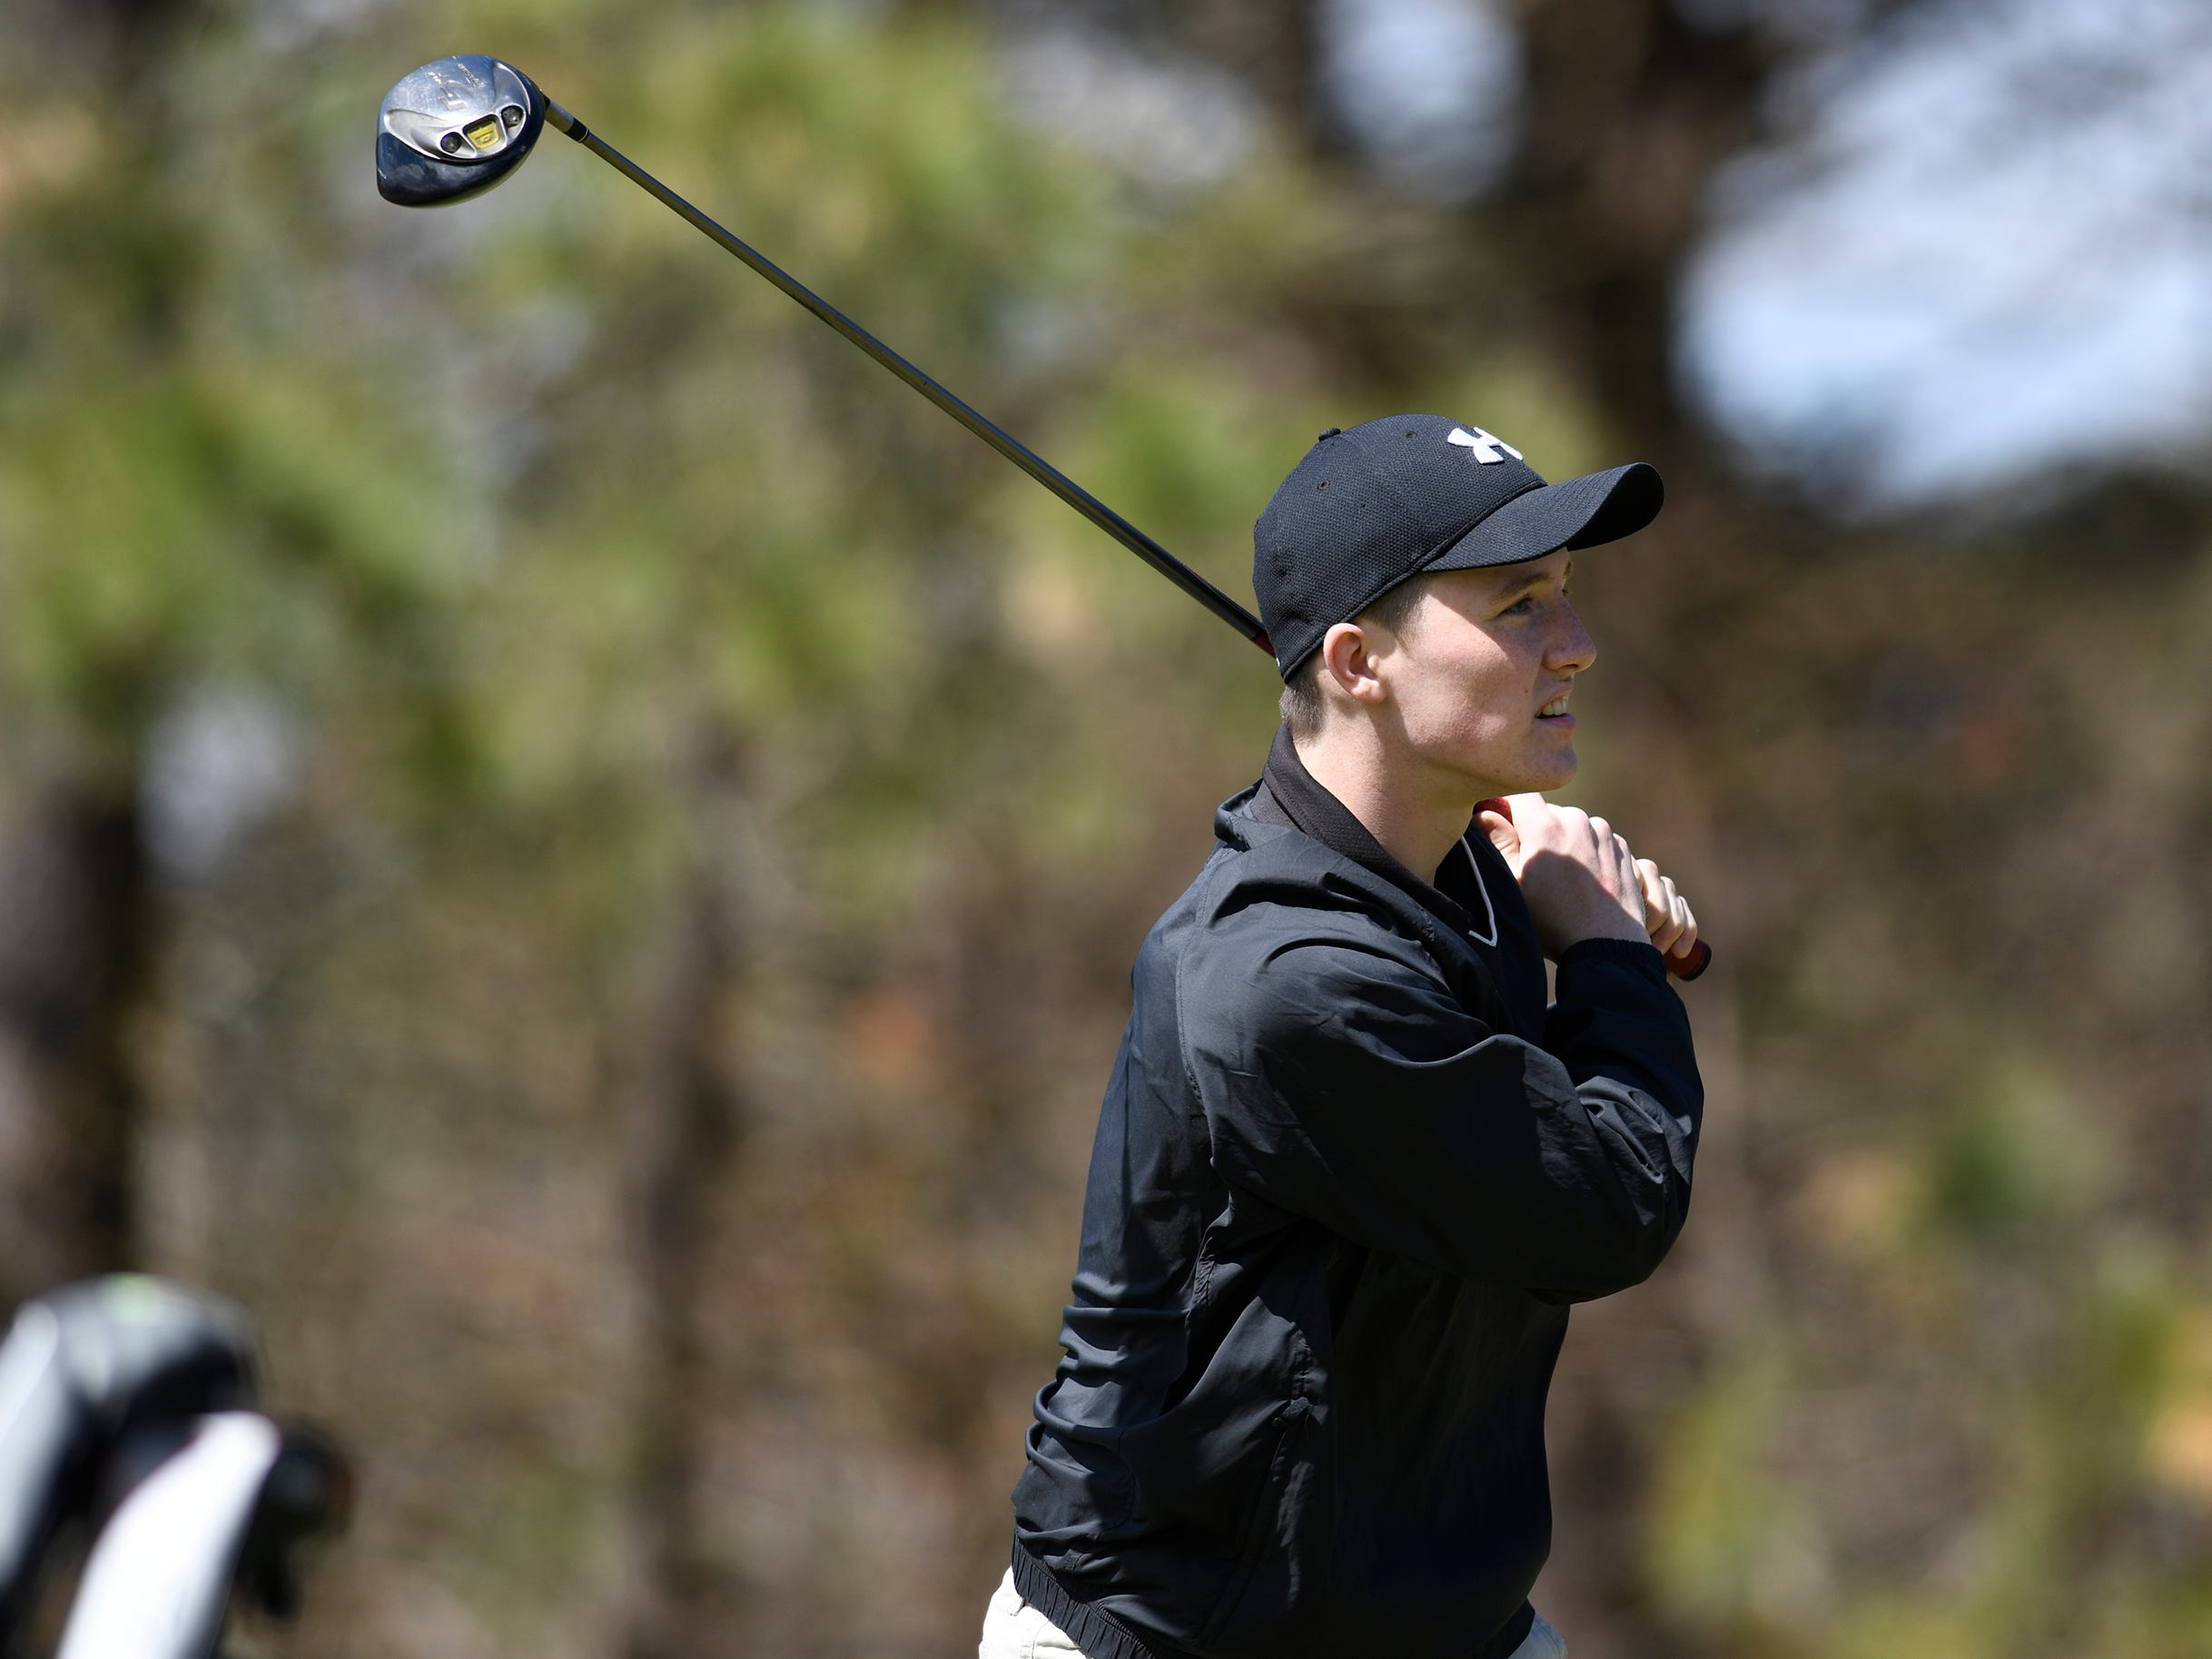 Kyle Smith of Barnegat High School competes at the Ocean County Tournament on April 15, 2019,  at Sea Oaks in Little Egg Harbor. Toms River North's Connor Bekefi emerged as the individual champion with a 3-over-par 75, four shots better than teammate Leo Kane. Toms River North successfully defended its team title, posting a total of 336, which was 18 shots better than Southern. Brick Memorial finished third.